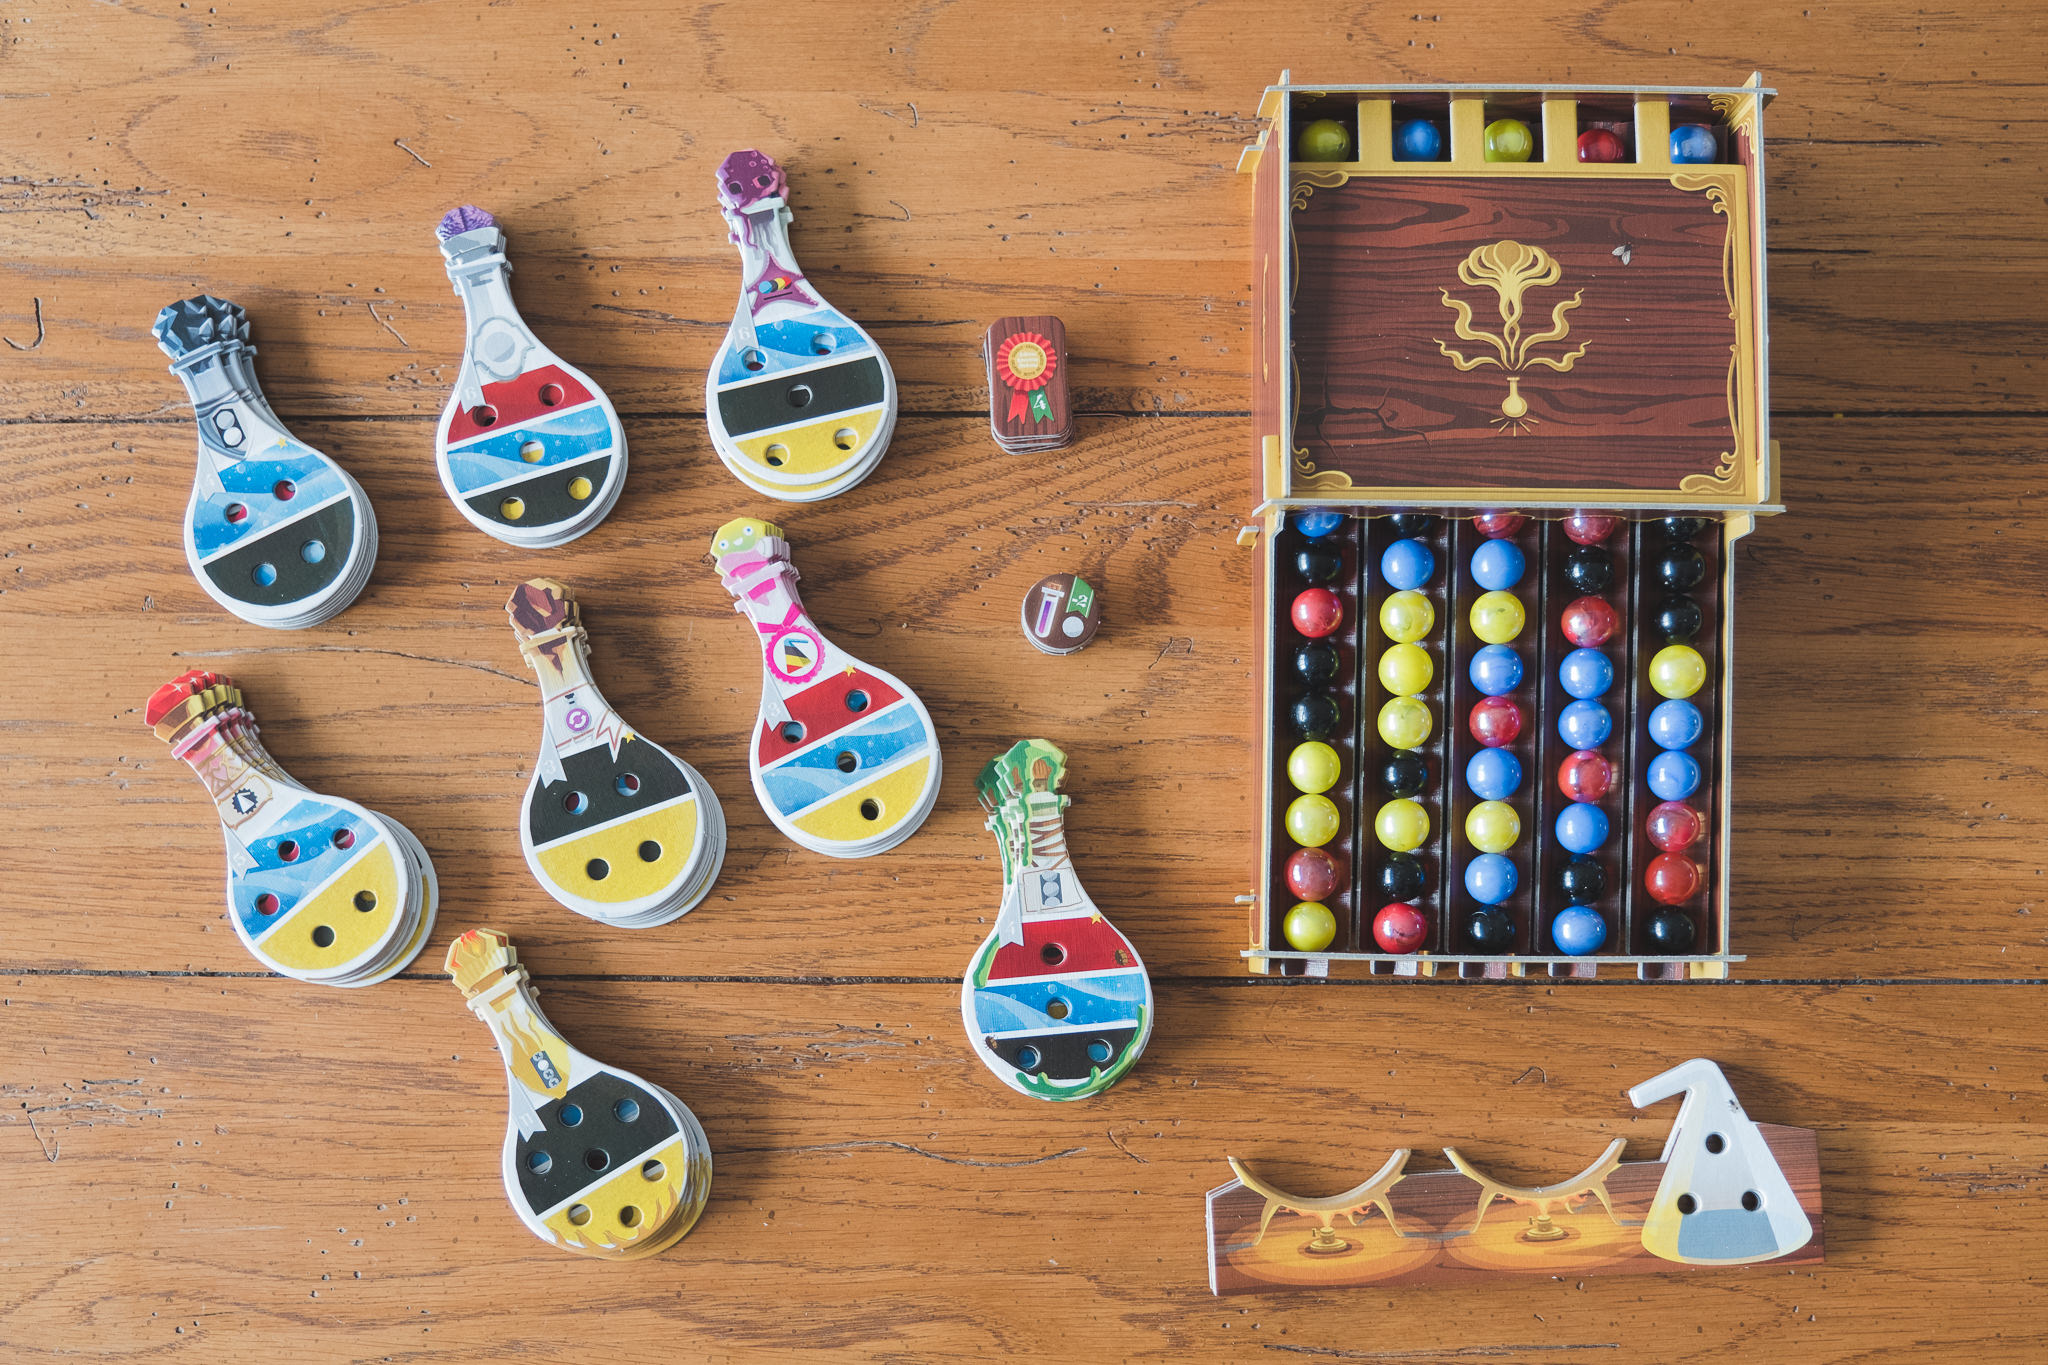 Potion Explosion Components